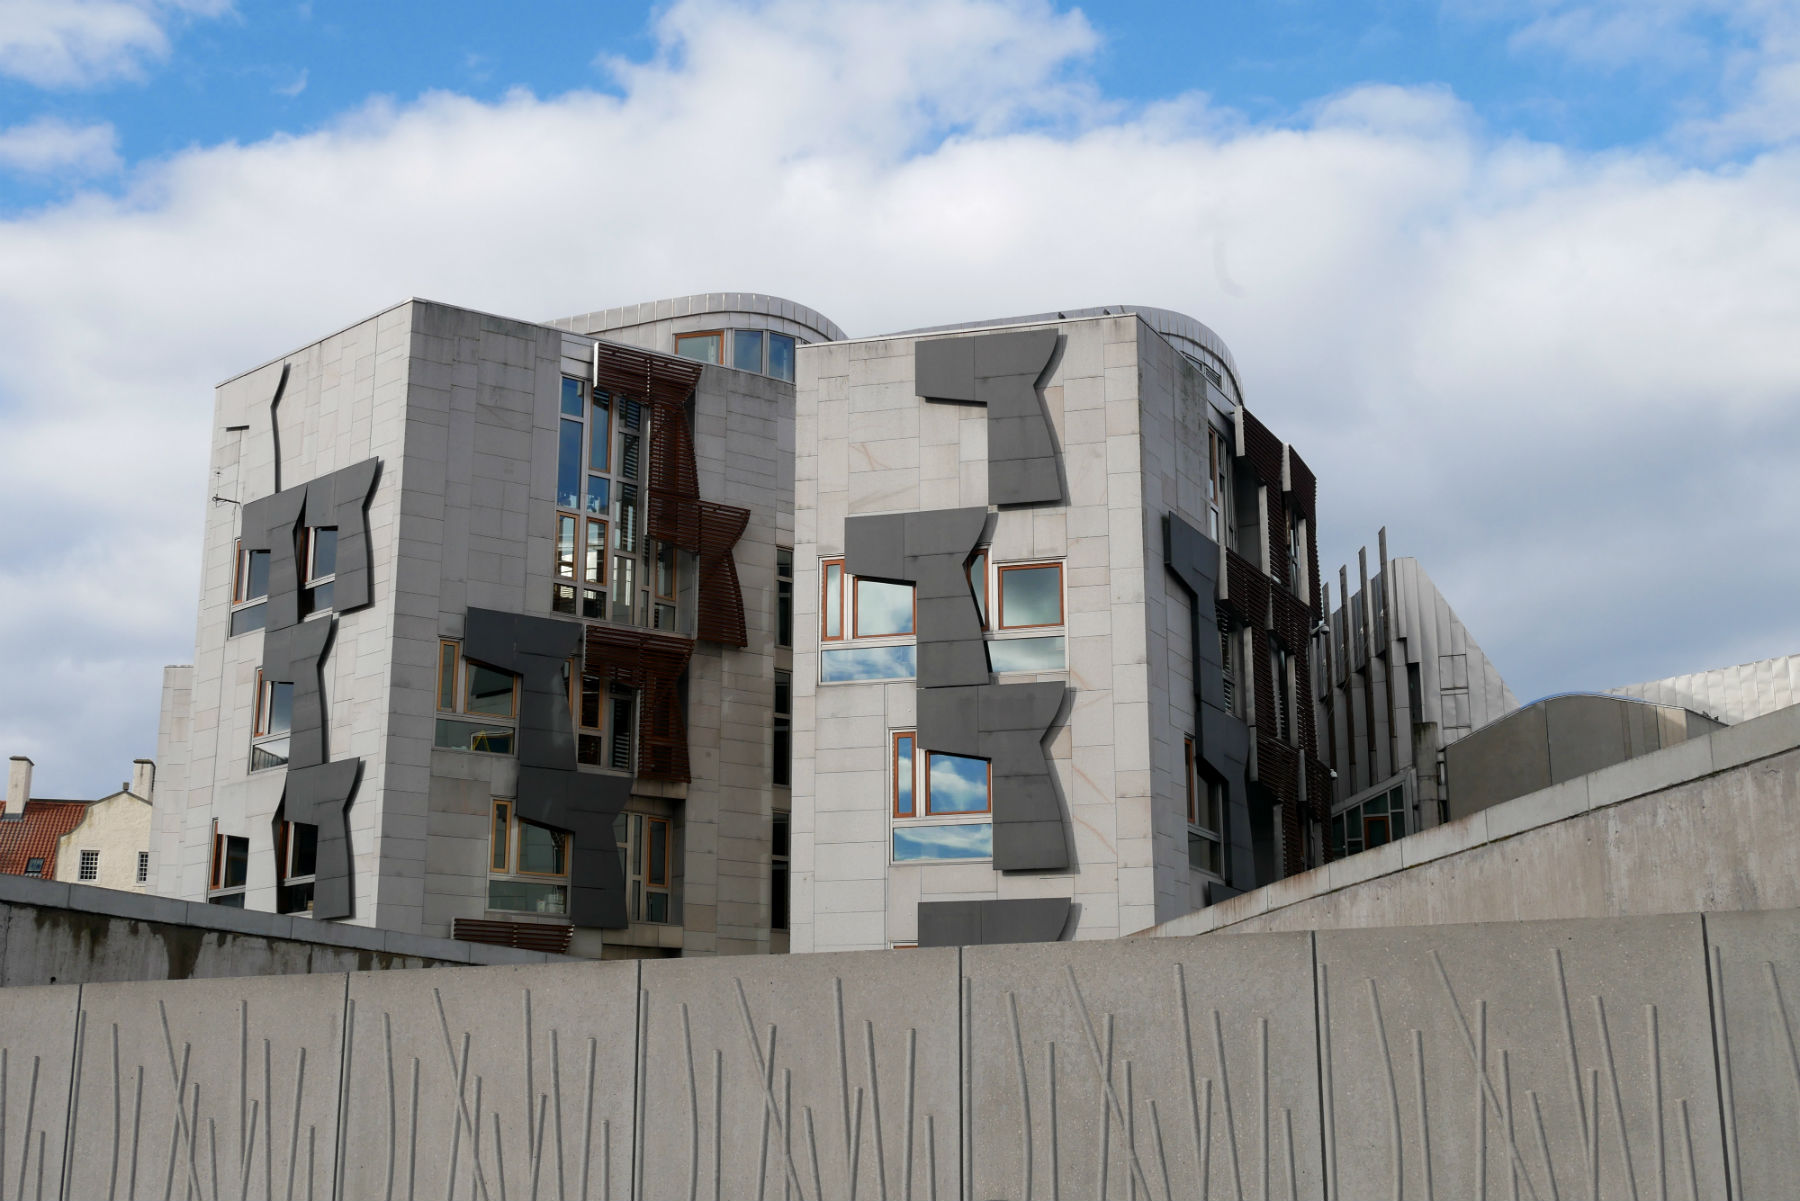 scottish parliament building 2